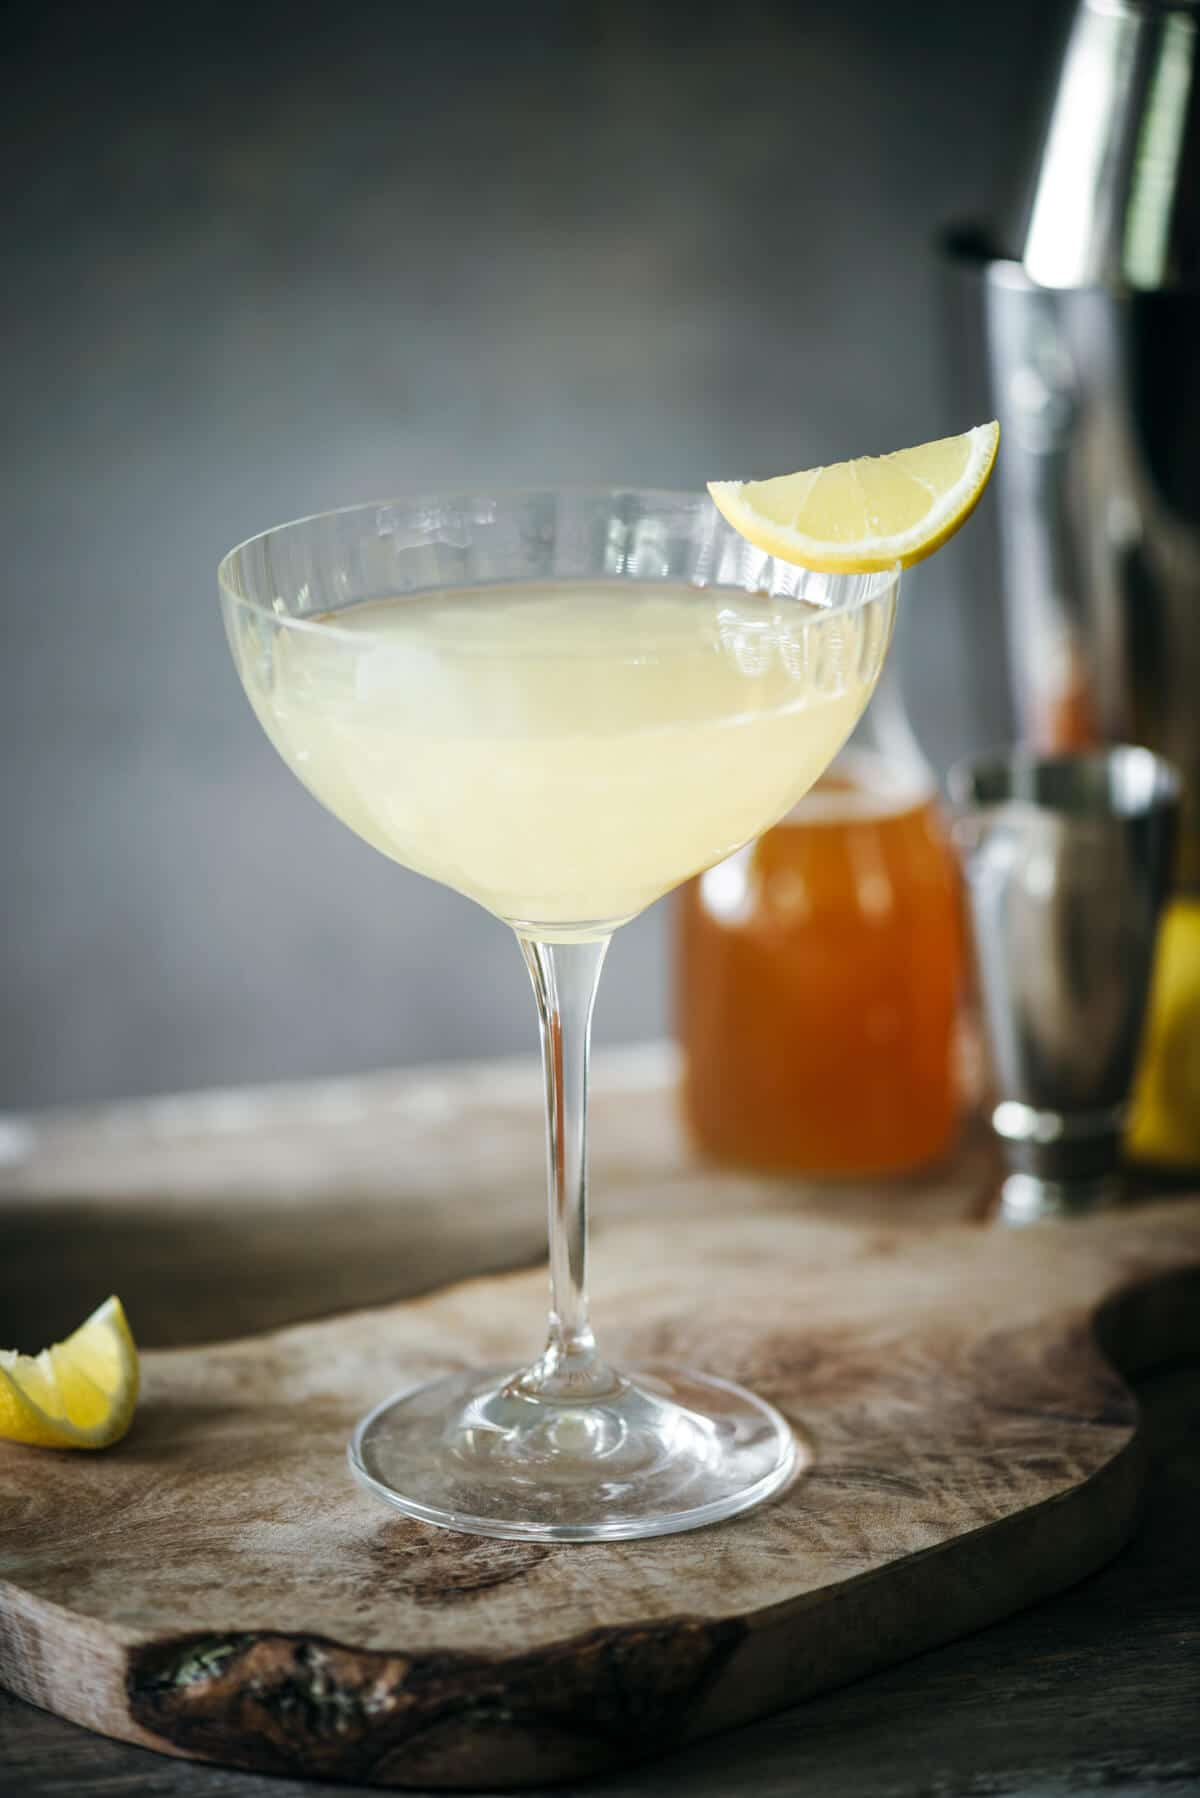 Speakeasy gin cocktail with honey syrup and lemon